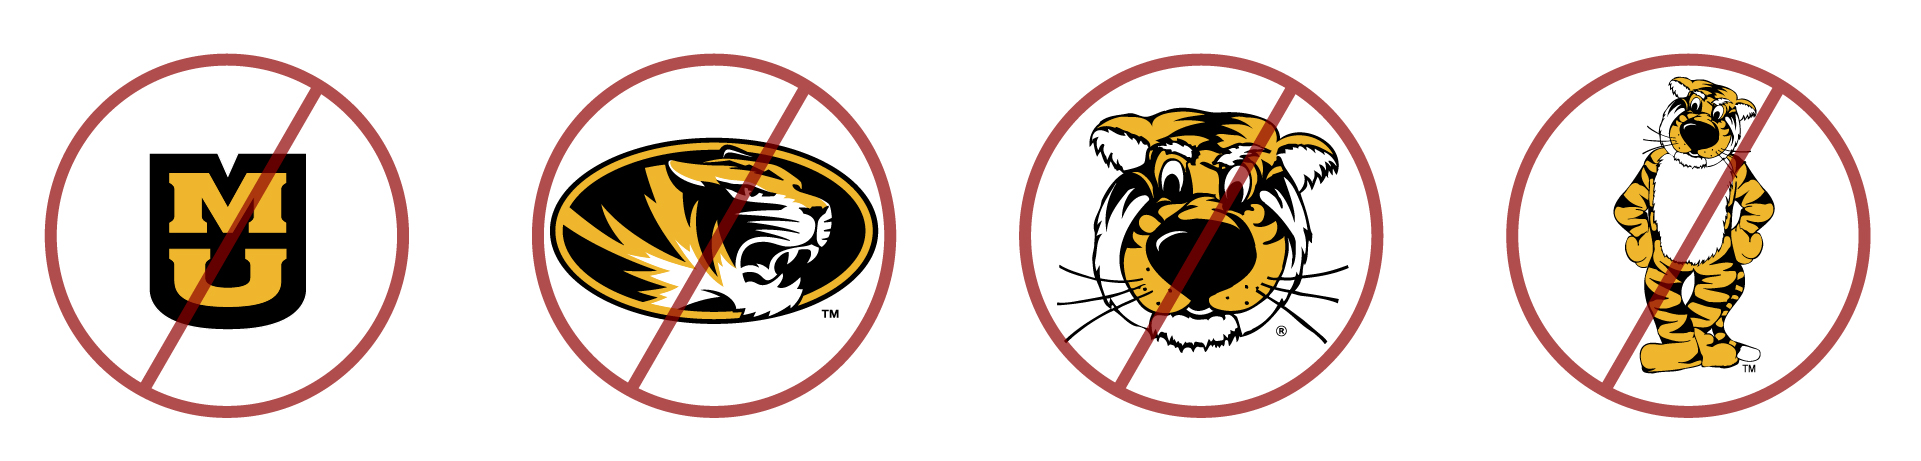 Mizzou trademarks that Mizzou Club Sports are not allowed to use: Stacked MU, Athletic Tiger Head, Truman the Tiger